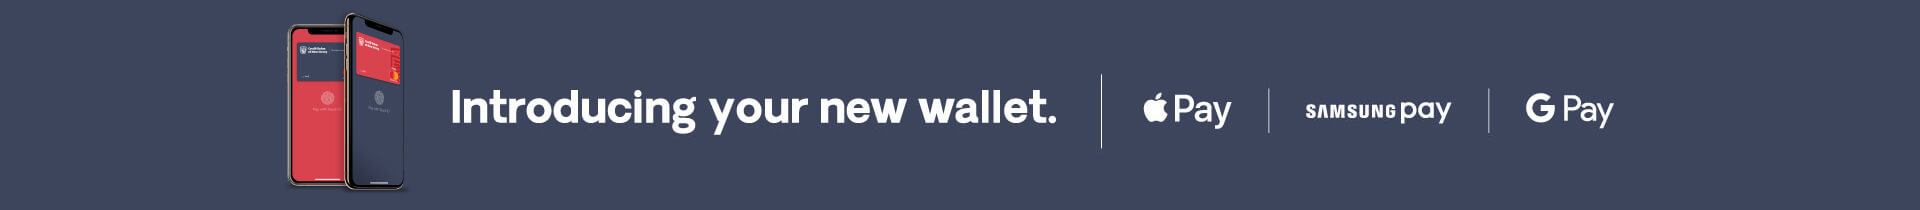 Introducing your new wallet. Apple Pay | Samsung Pay | Google Pay